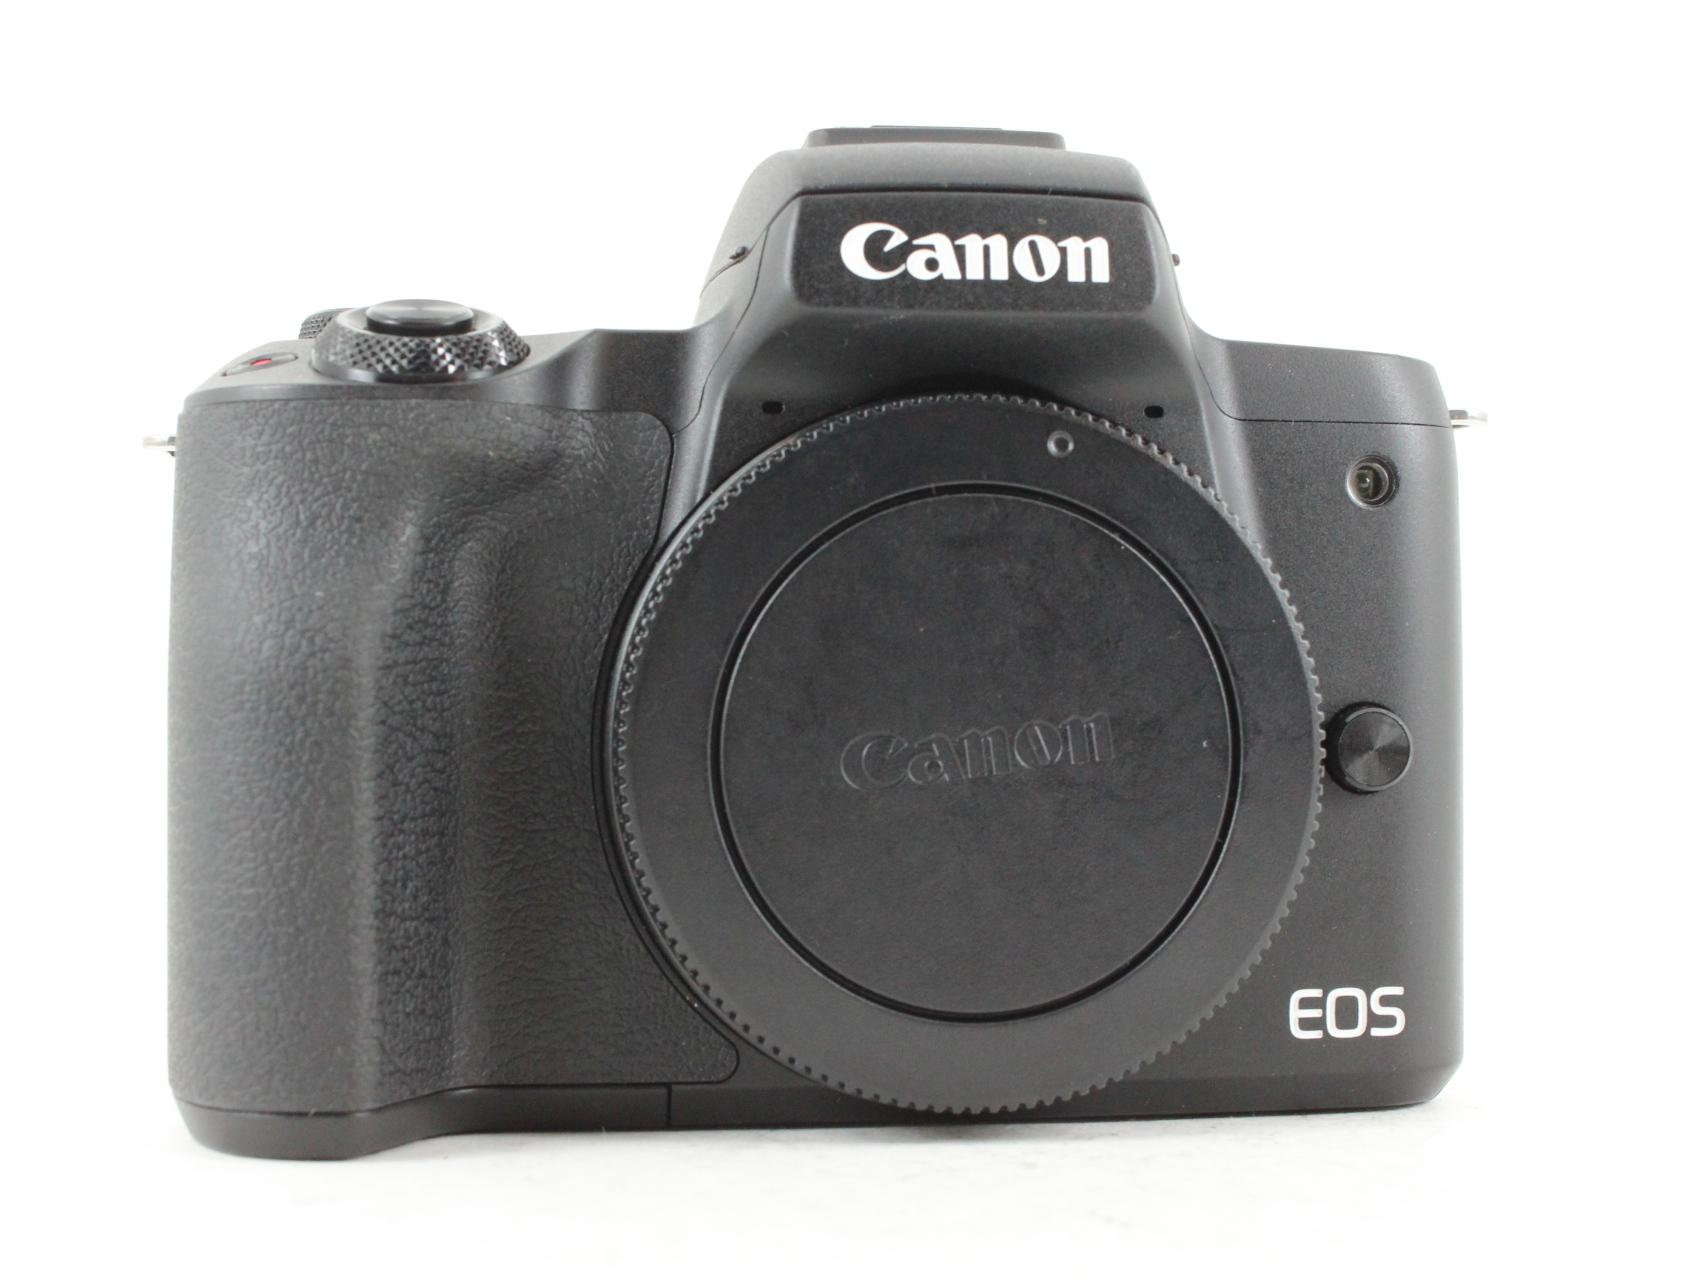 gifts for photographers under 500 2021 edition eos m50 image